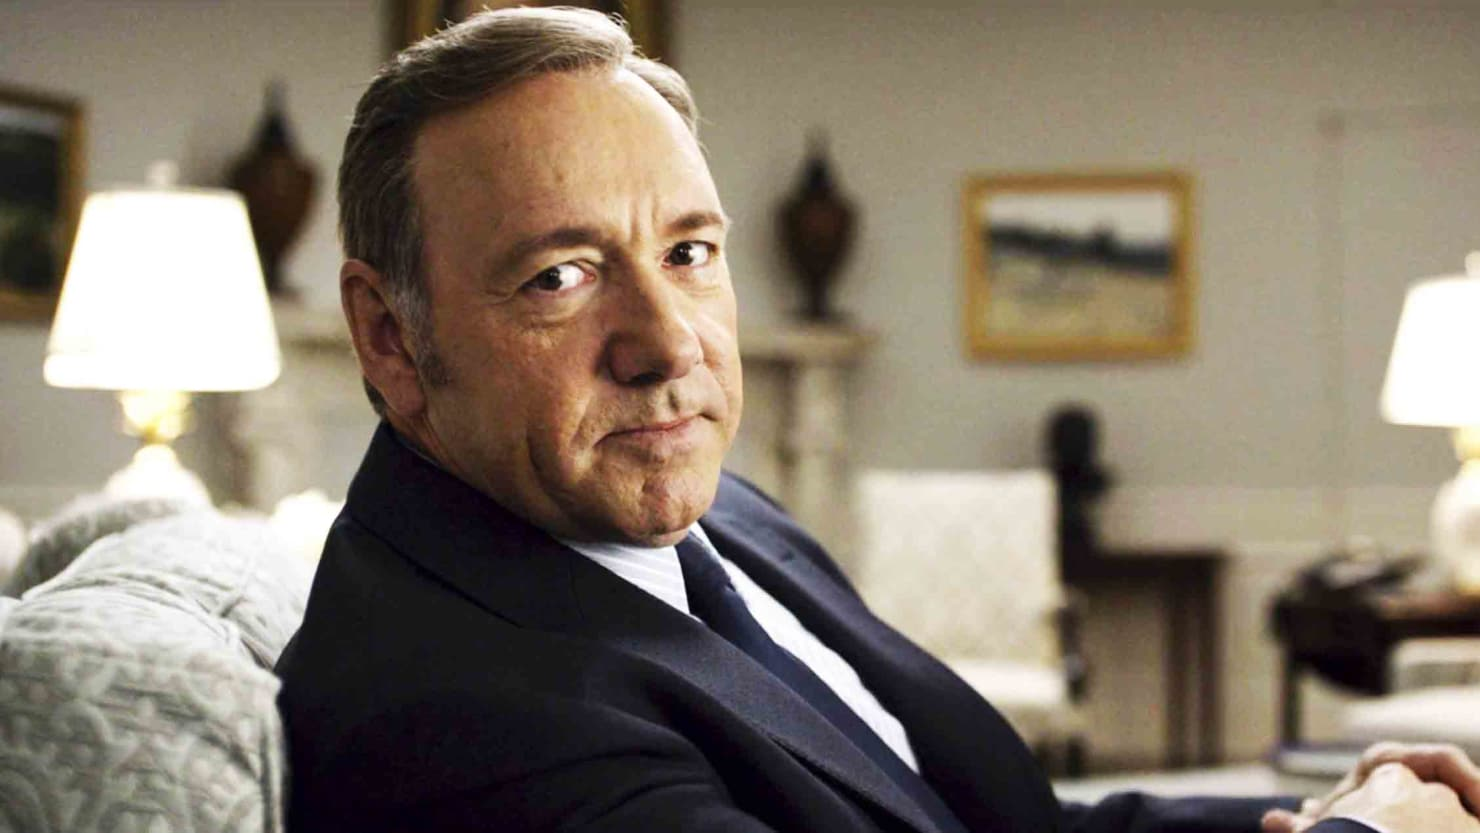 More Trouble For Kevin Spacey As More Sexual Harassment Allegations Evolve